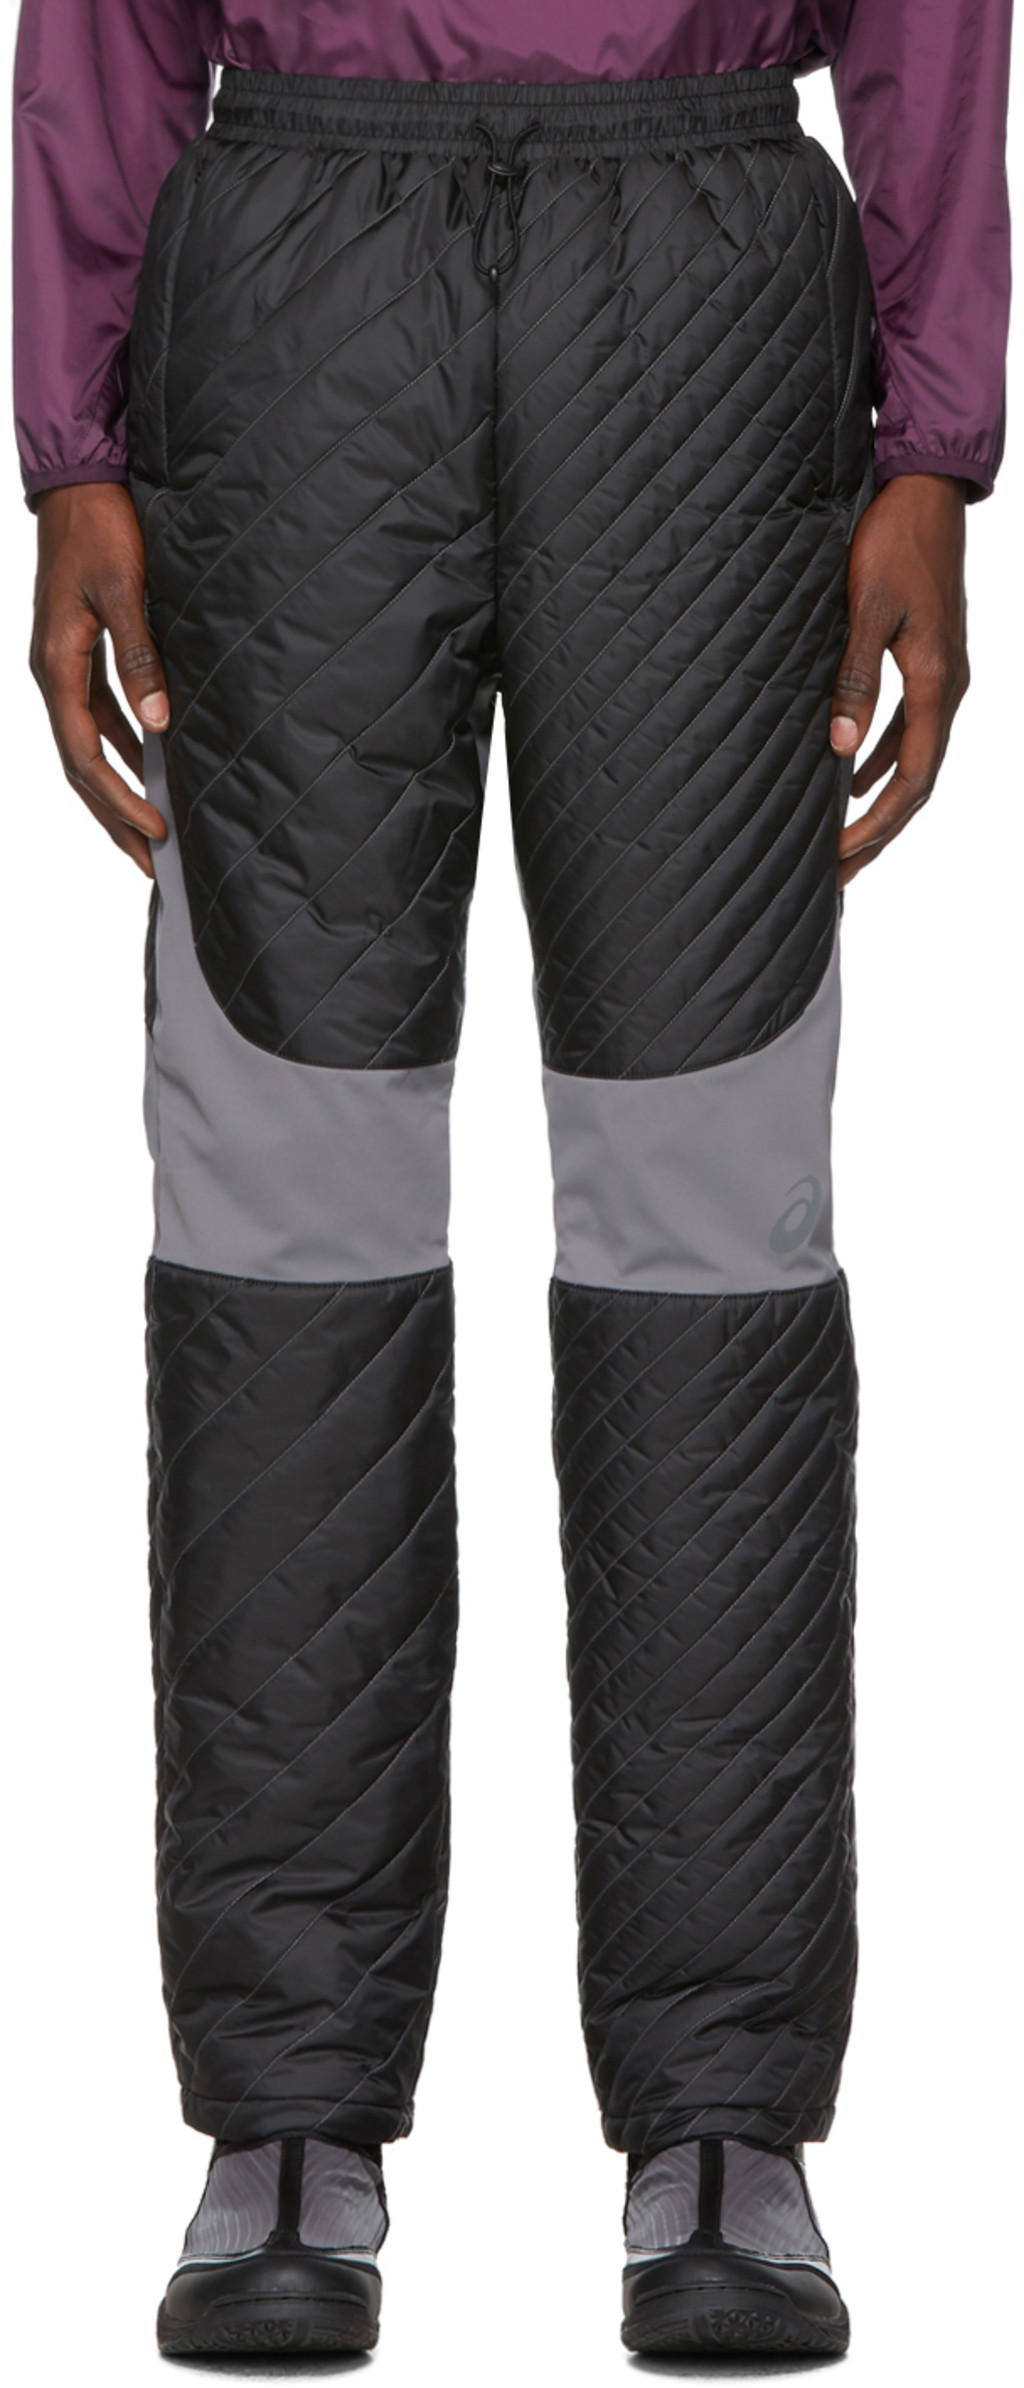 Cut Price Sweatpants By Alexander Wang Clothing Reversed